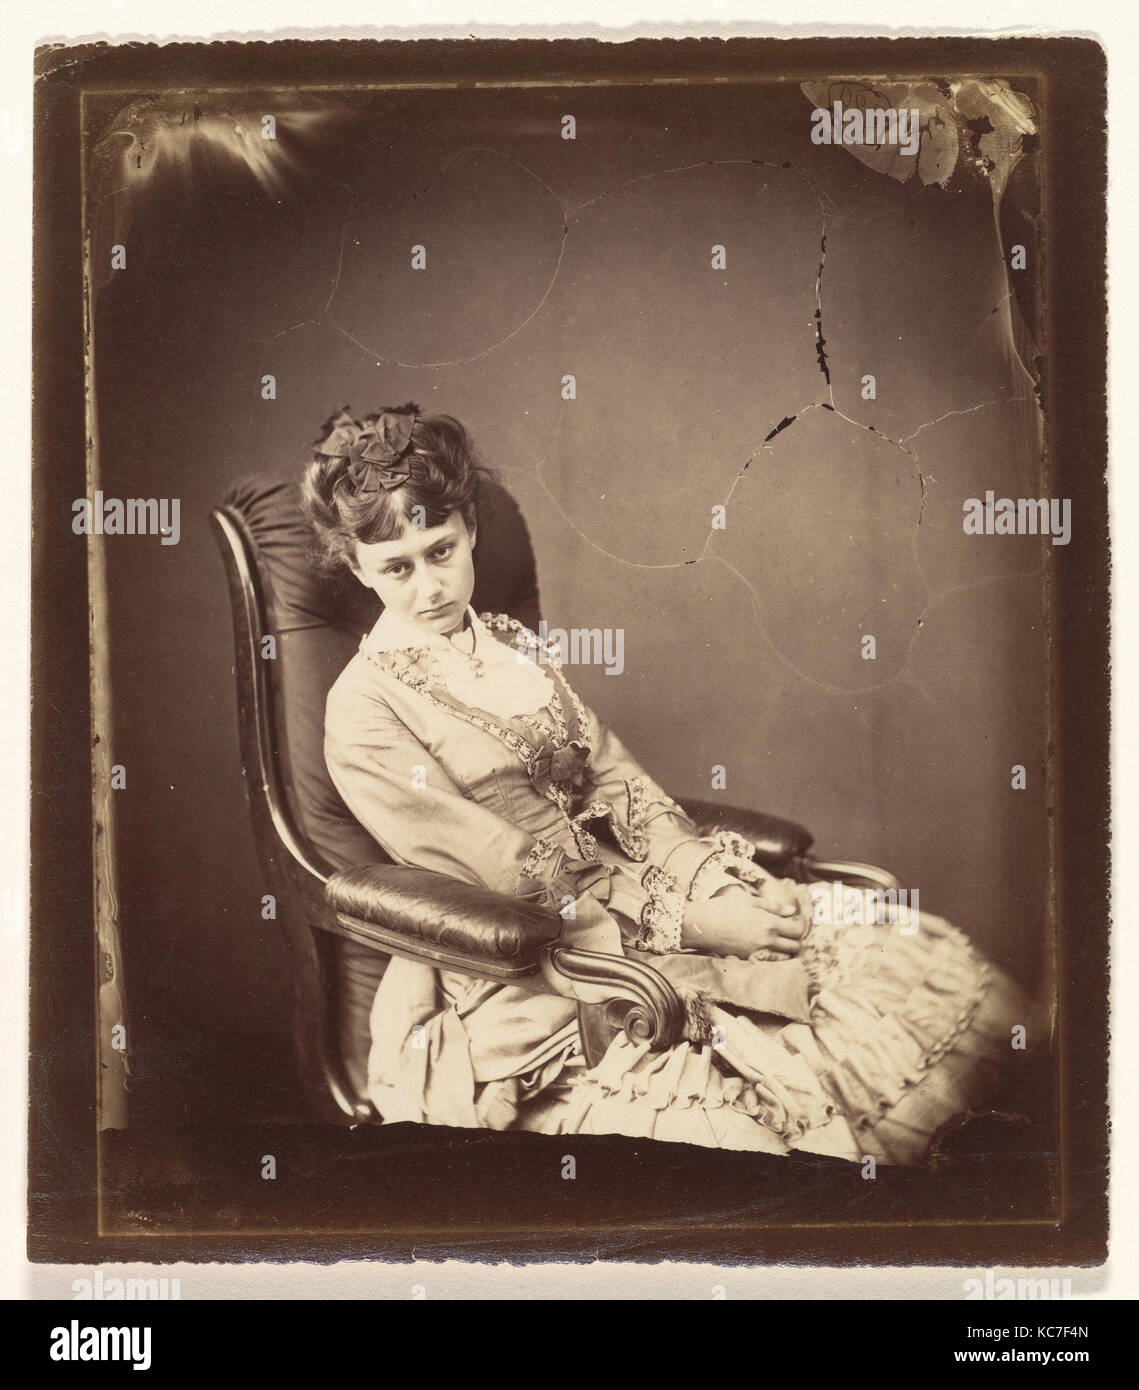 The Last Sitting, June 25, 1870, Albumen silver print from glass negative, Sheet: 6 1/4 × 5 9/16 in. (15.9 - Stock Image